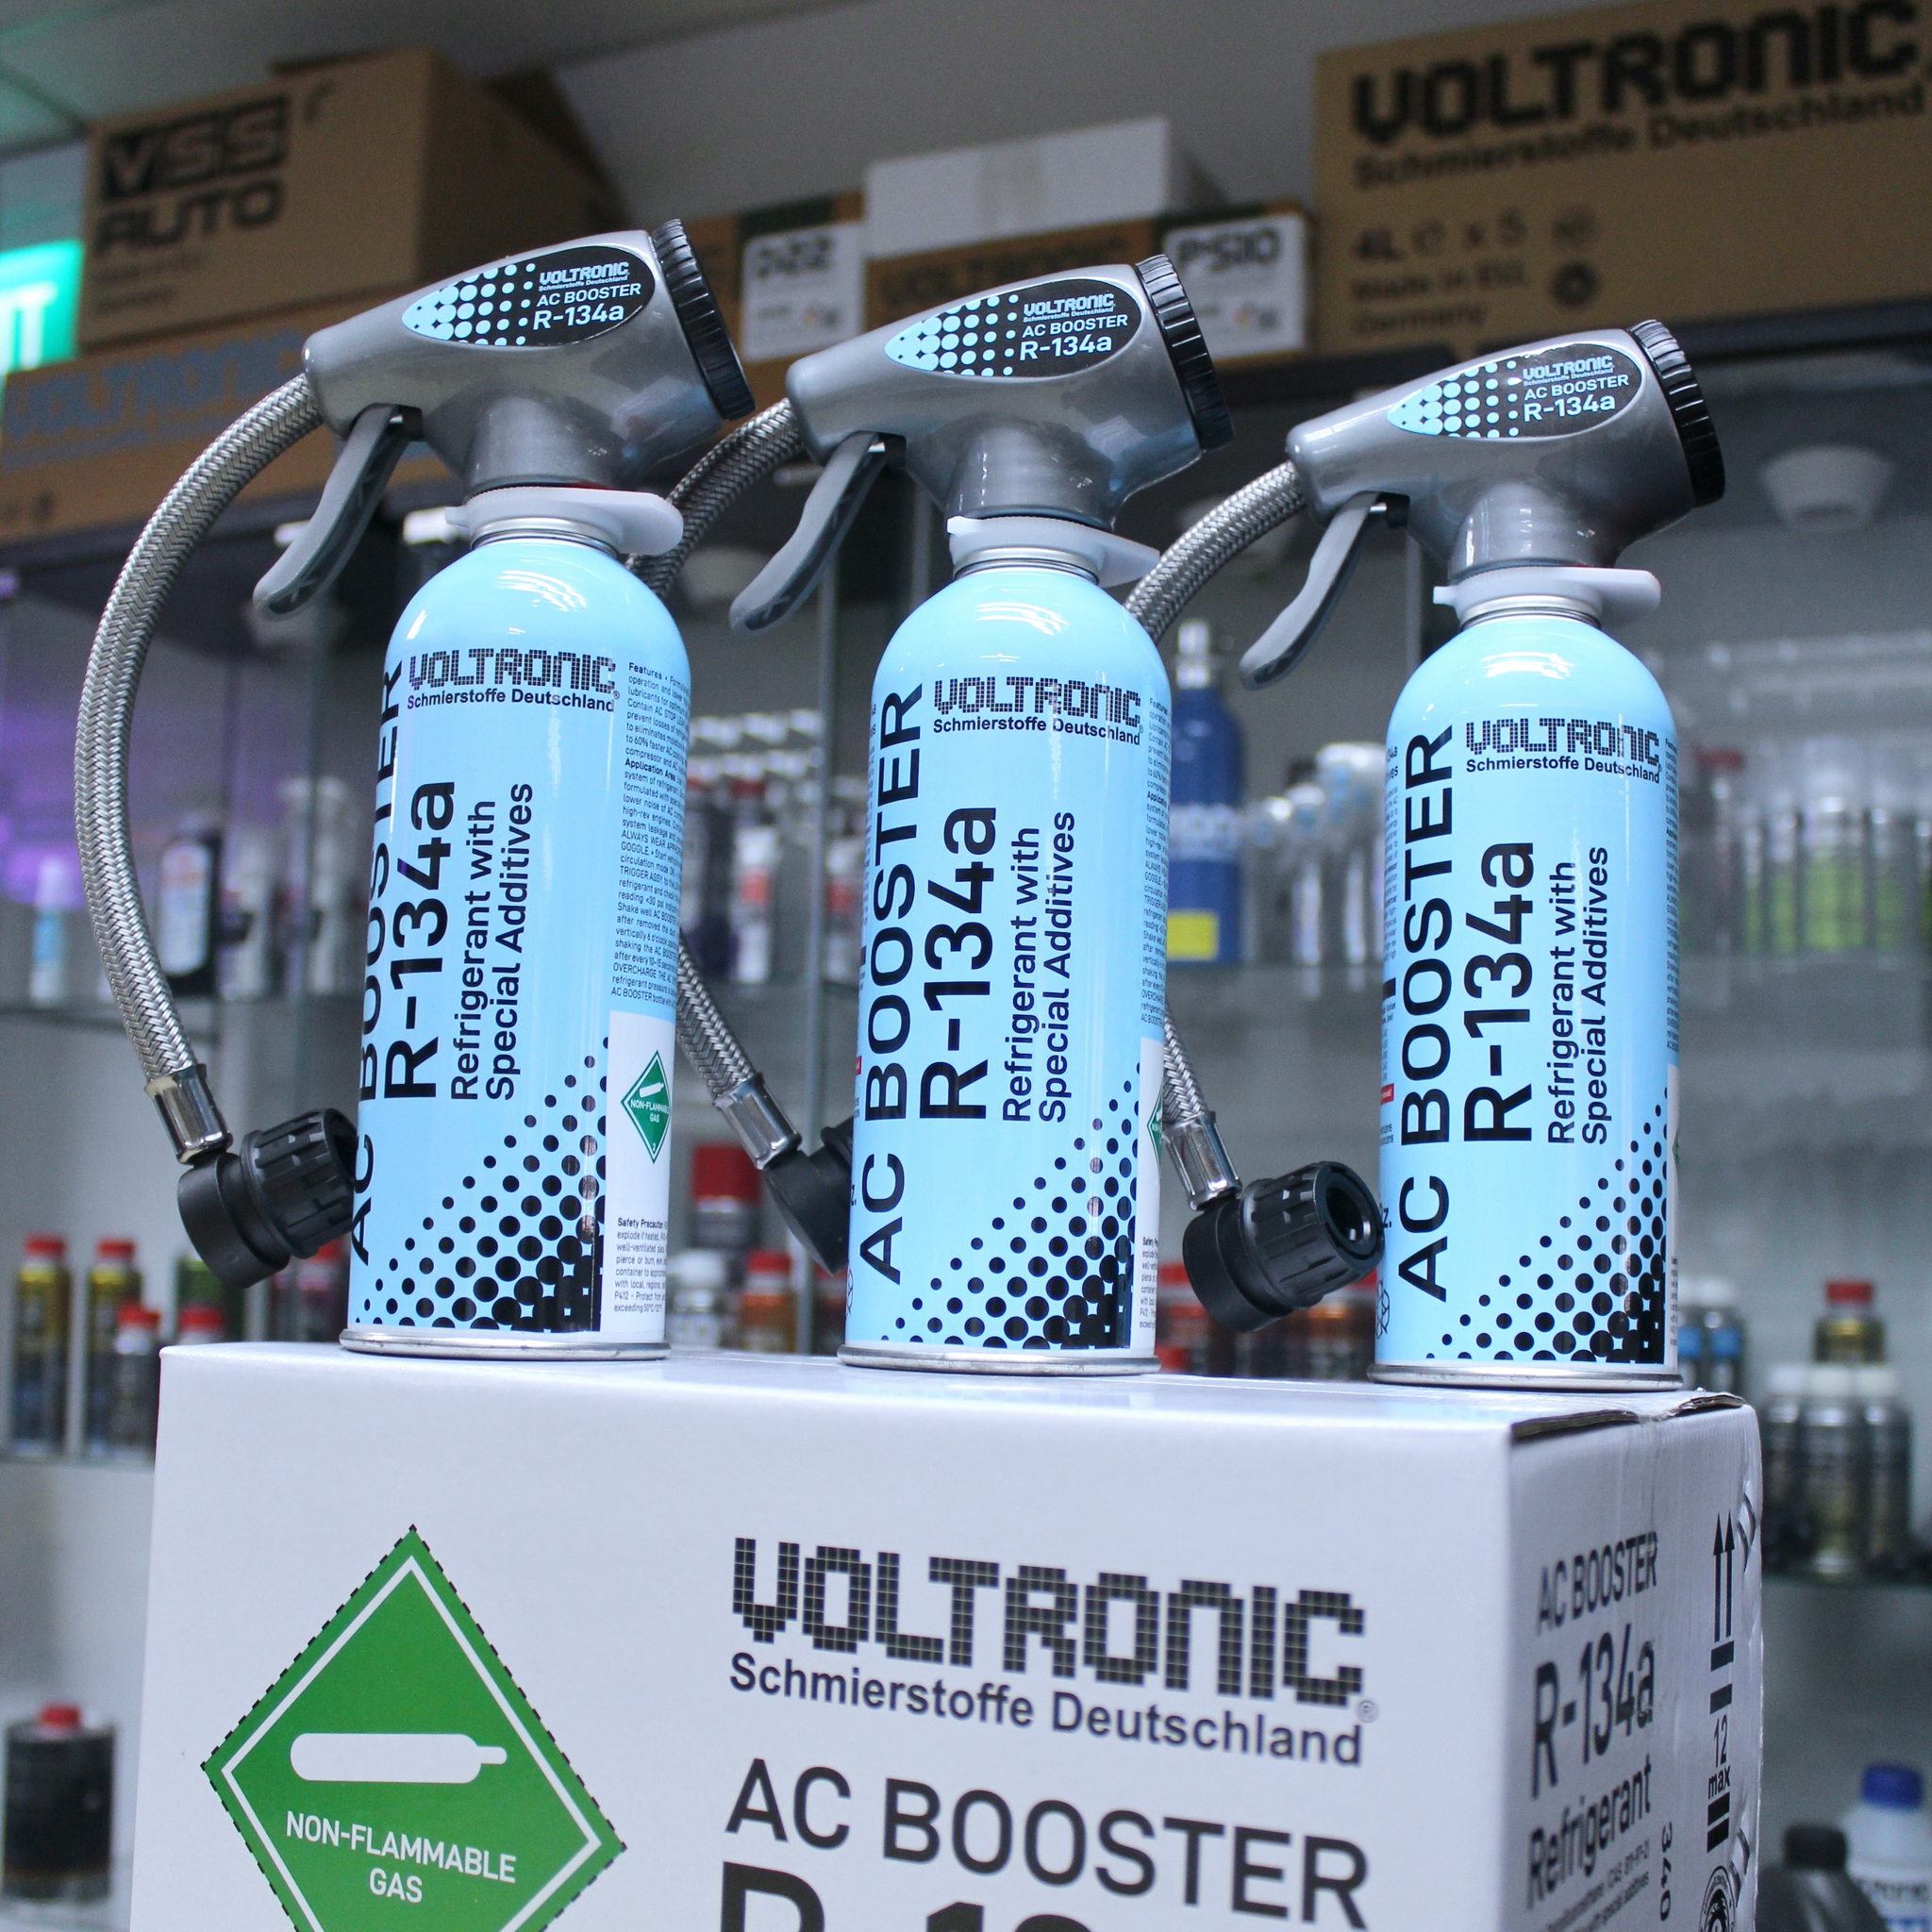 VOLTRONIC ® AC BOOSTER R-134a Refrigerant with Special Additives